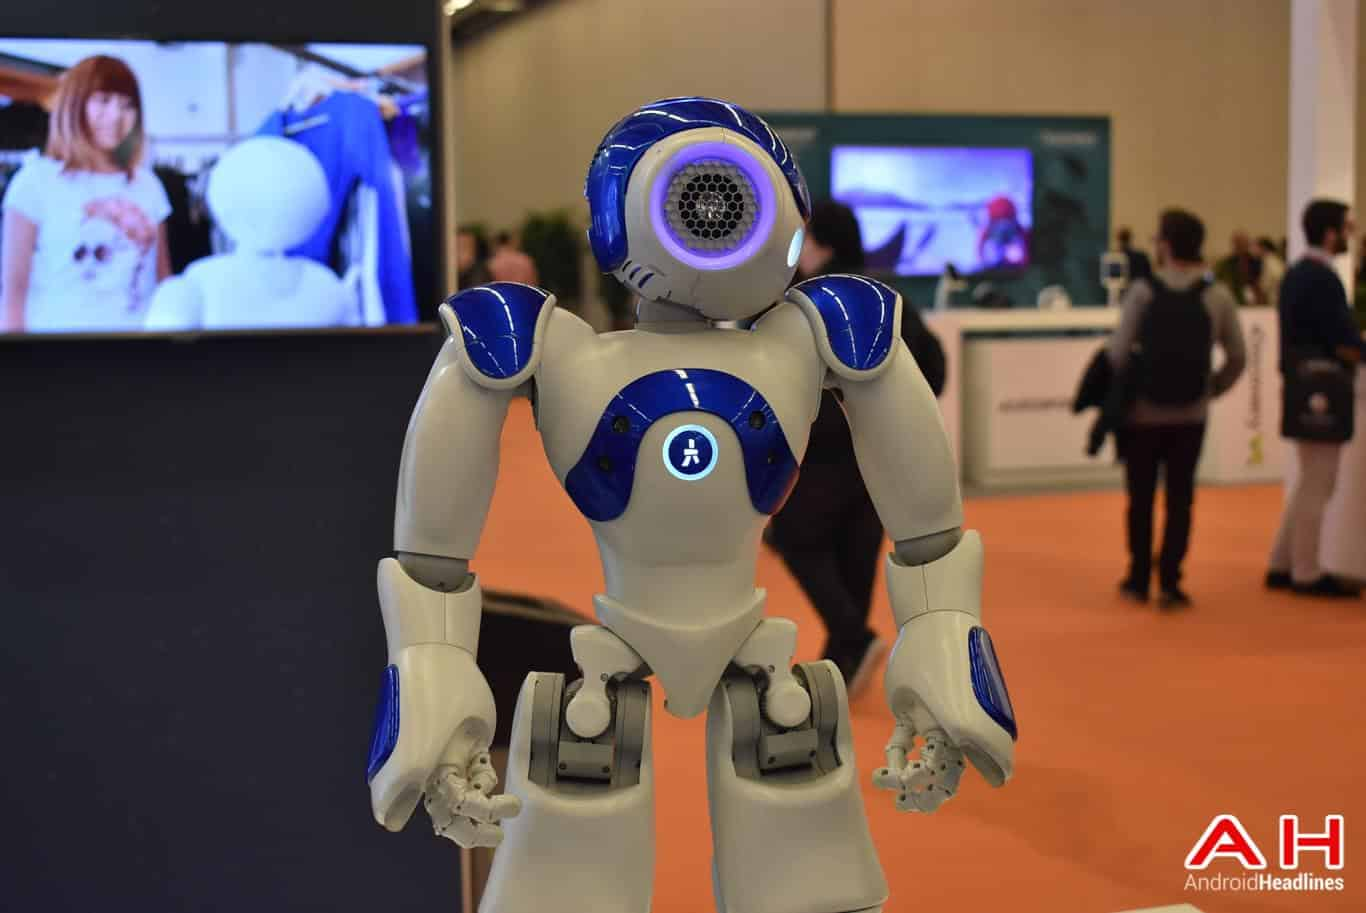 SoftBank Pepper Robot AH 15